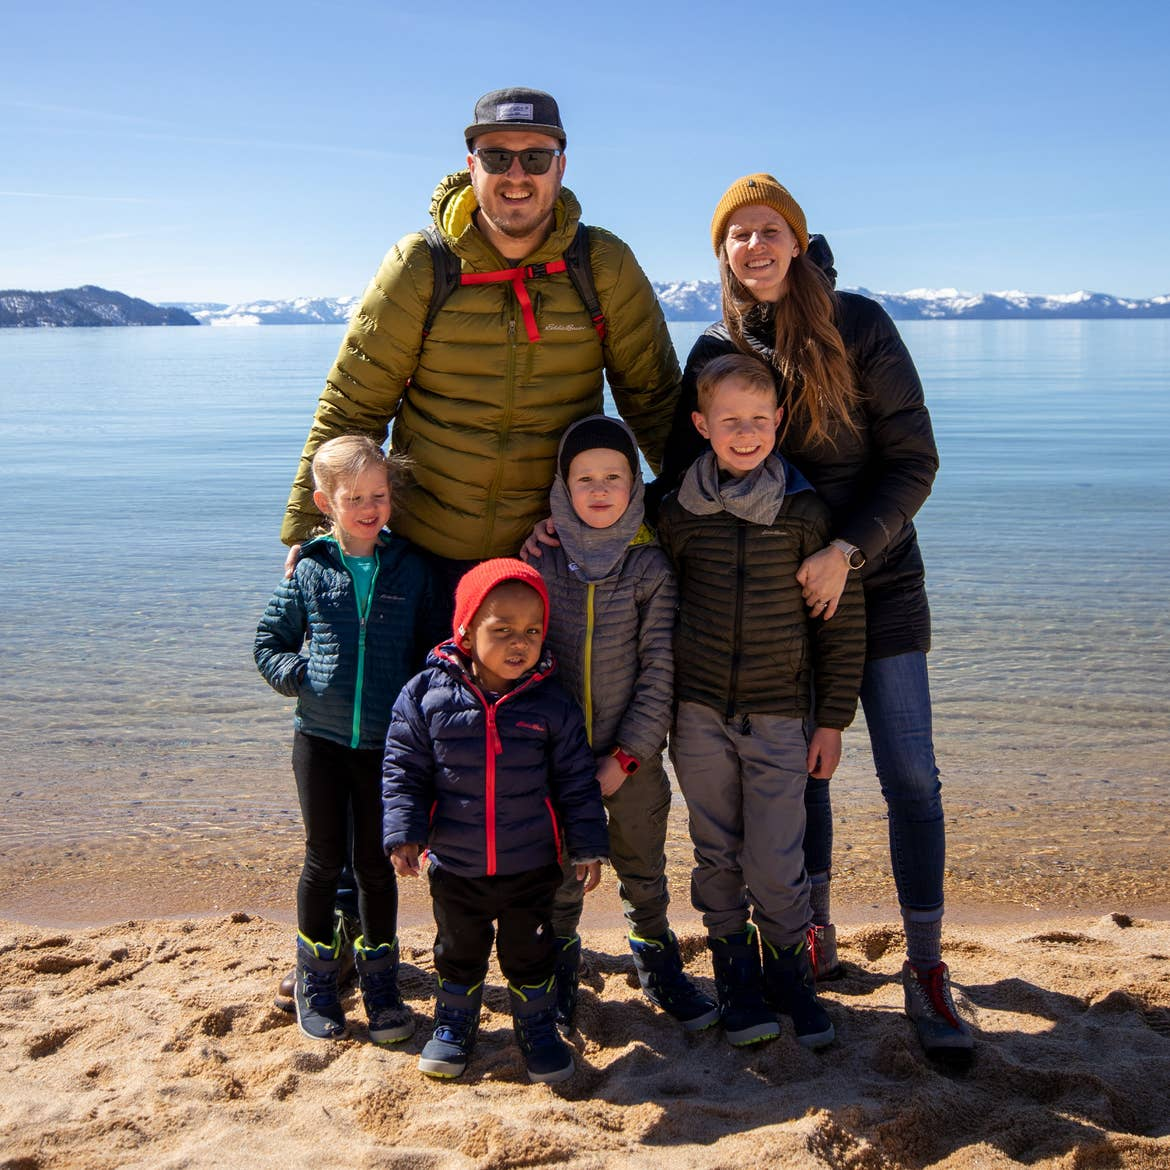 Featured Contributor, Andrea Rassmussen (back-right), stands with her family on the sands at Sand Harbor in Nevada State Park.